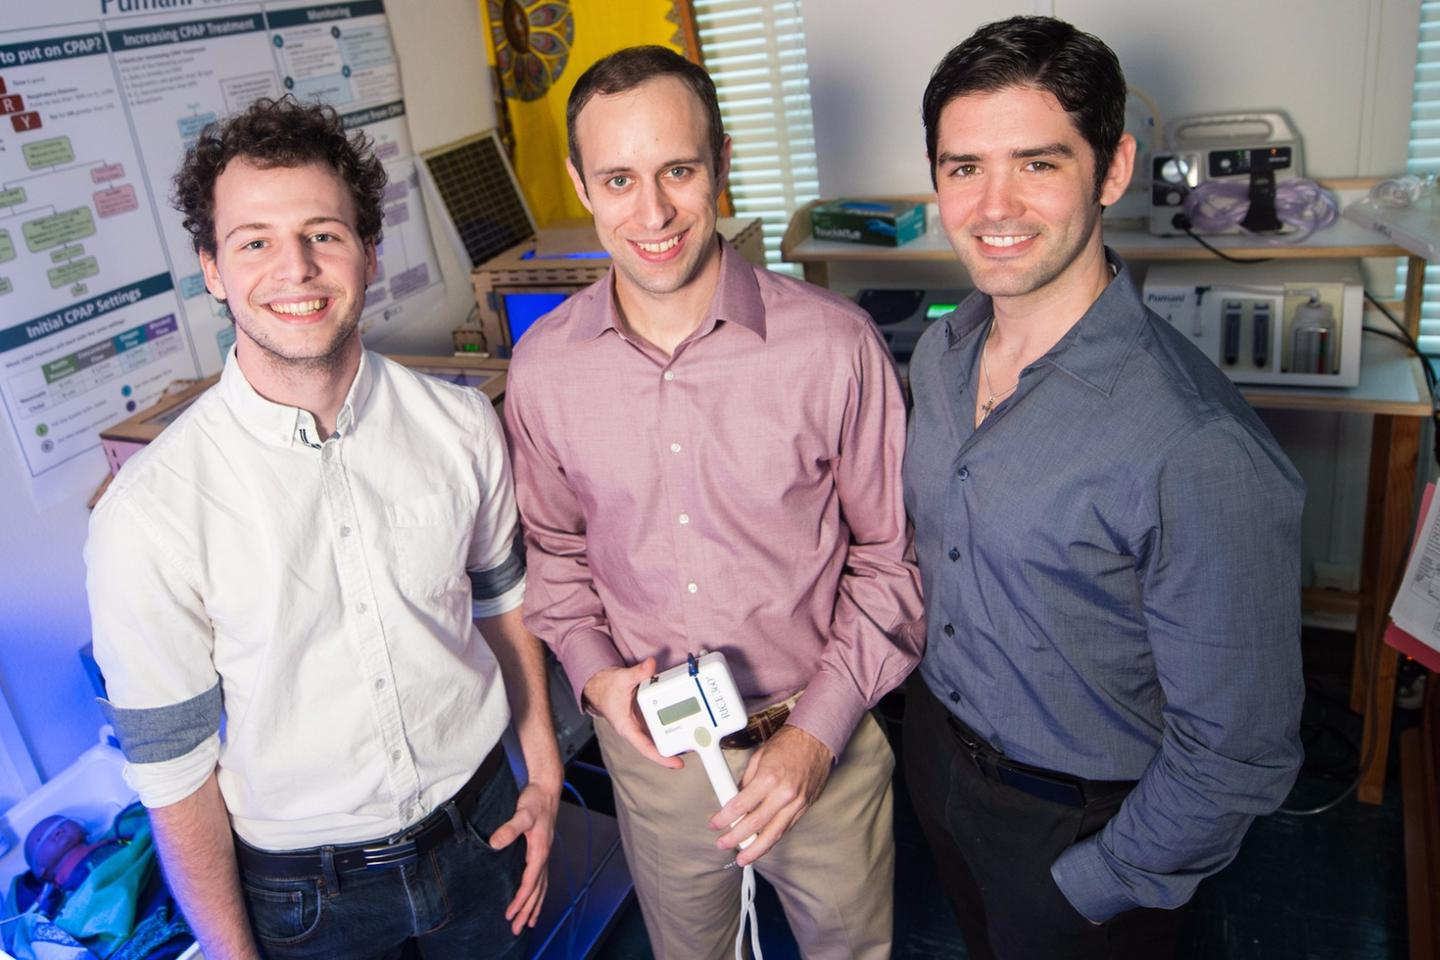 Rice University students (from left) Mathieu Simeral, Pelham Keahey and Kristofer Schroder helped complete the first clinical study of BiliSpec